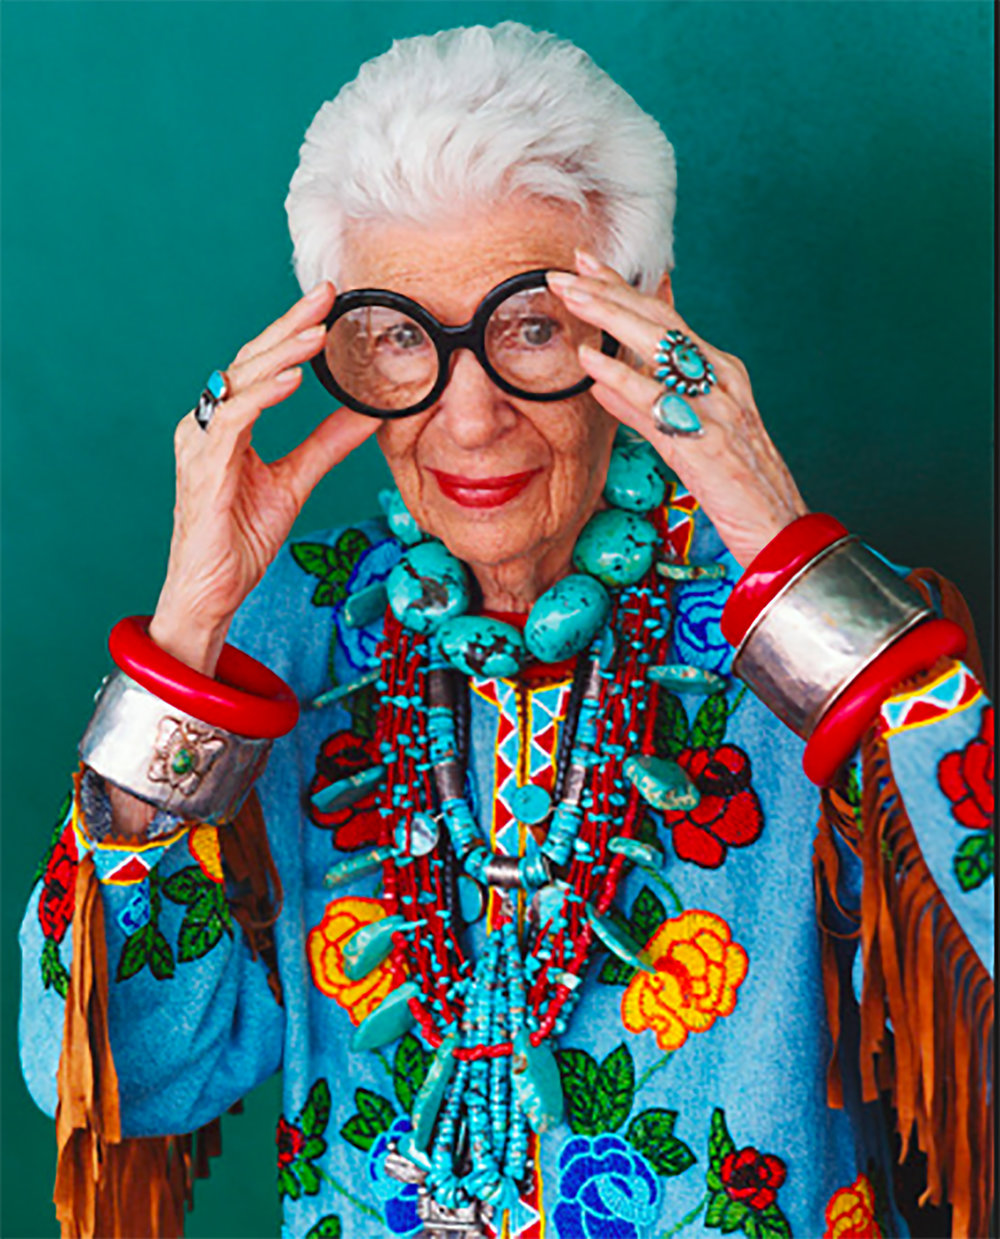 - Iris (2014)Iris Apfel who is 93, has been for decades a well known interior designer with her husband for the White House and other prestigious places. Get to know the quick-witted, flamboyant maven who has had an outsized presence on the New York fashion scene for decades.  She is fashionable at any age and loves to shop everyday.